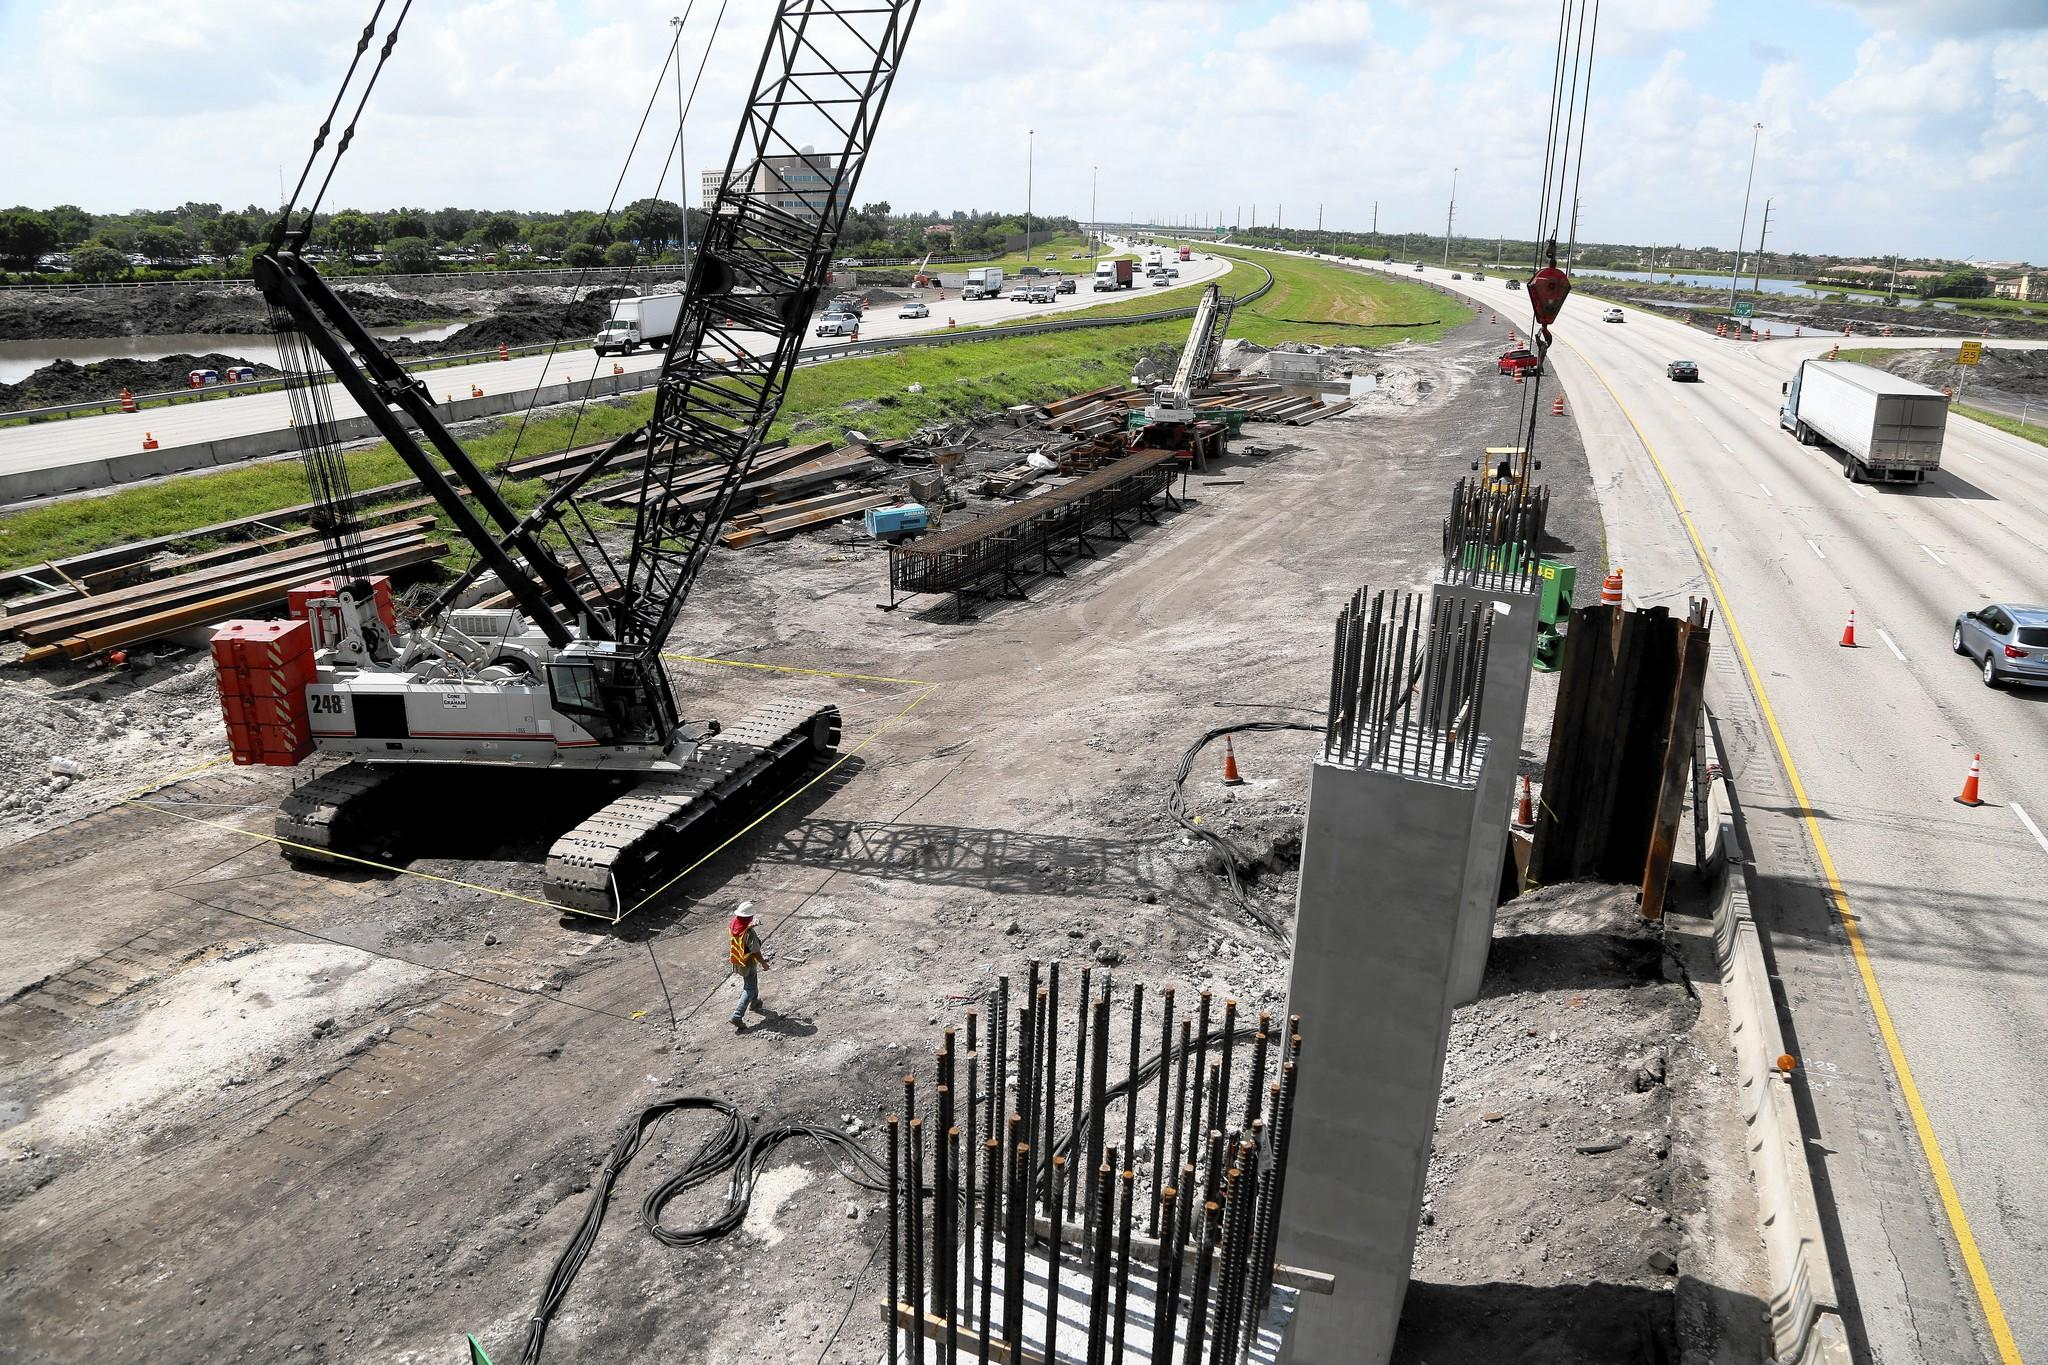 Construction in the median of I-75 continues at Miramar parkway. The next wave of construction on I-75 is about to begin and it will be much bigger than previously disclosed. The Sheridan Street overpass will be widened and the interchange will be rebuilt as express lanes are built in the median